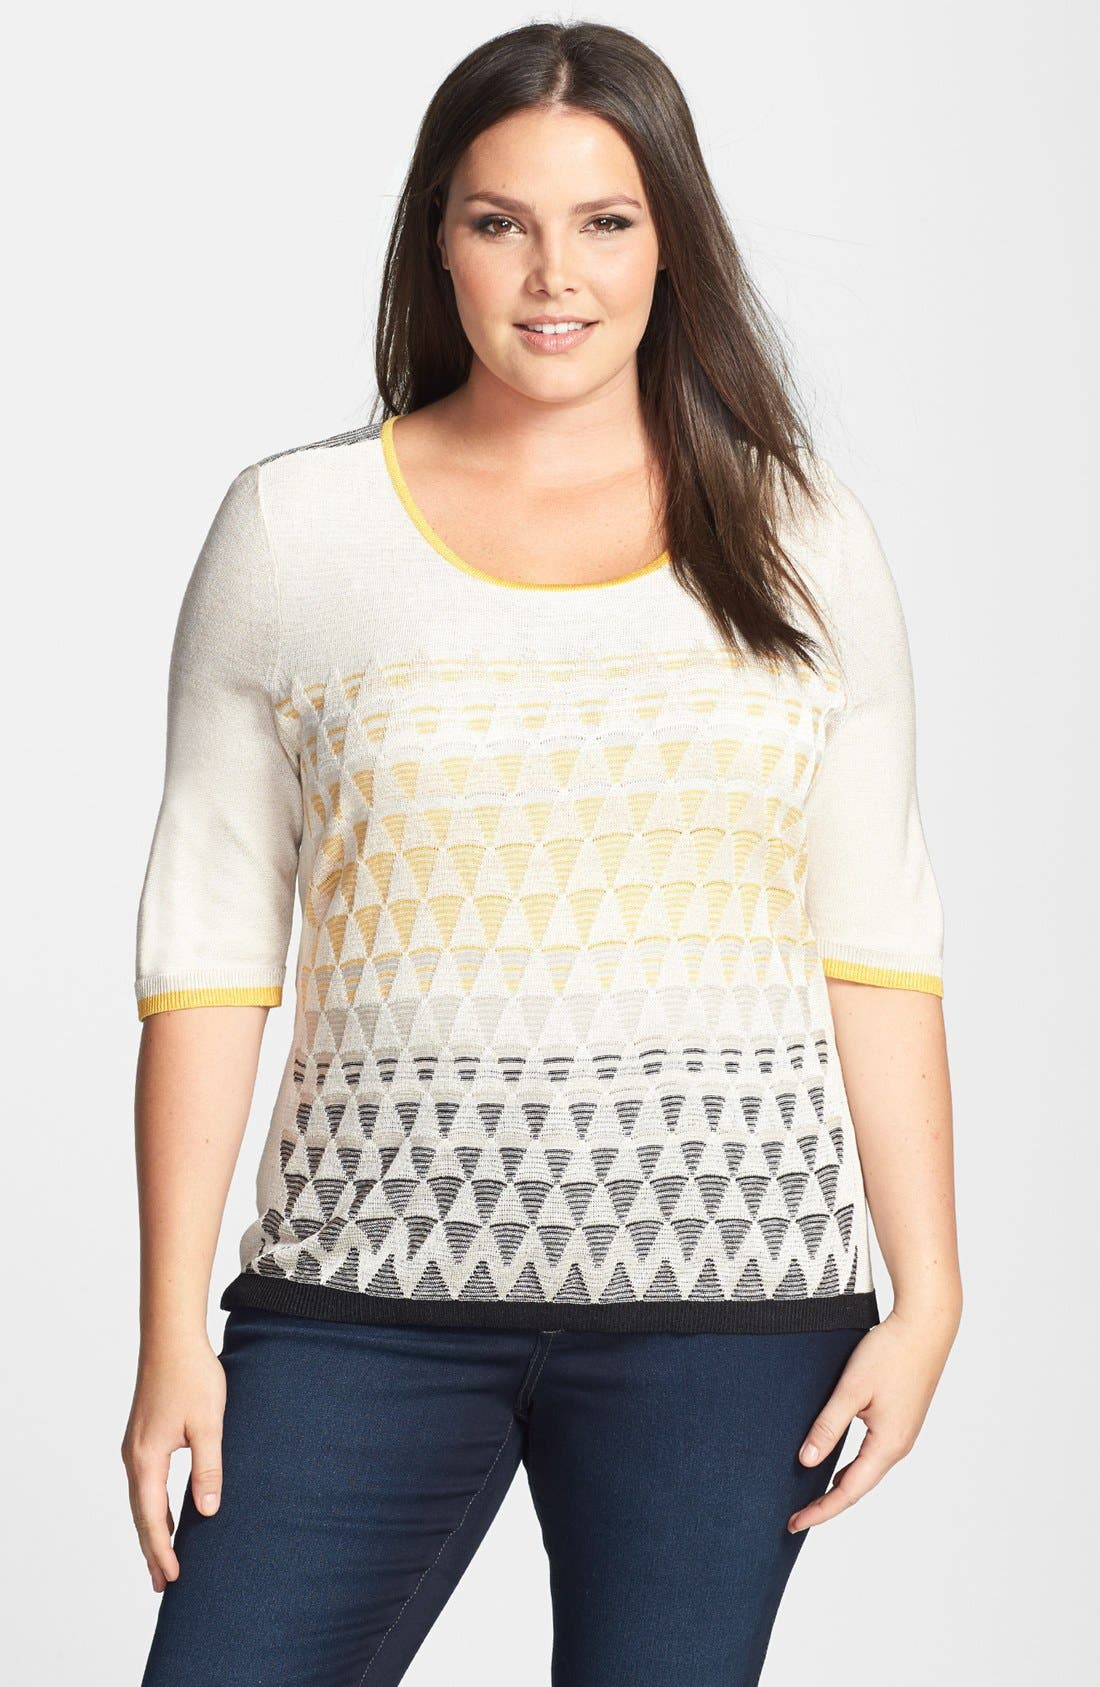 Main Image - NIC+ZOE 'Ombréd Angles' Silk Blend Top (Plus Size)